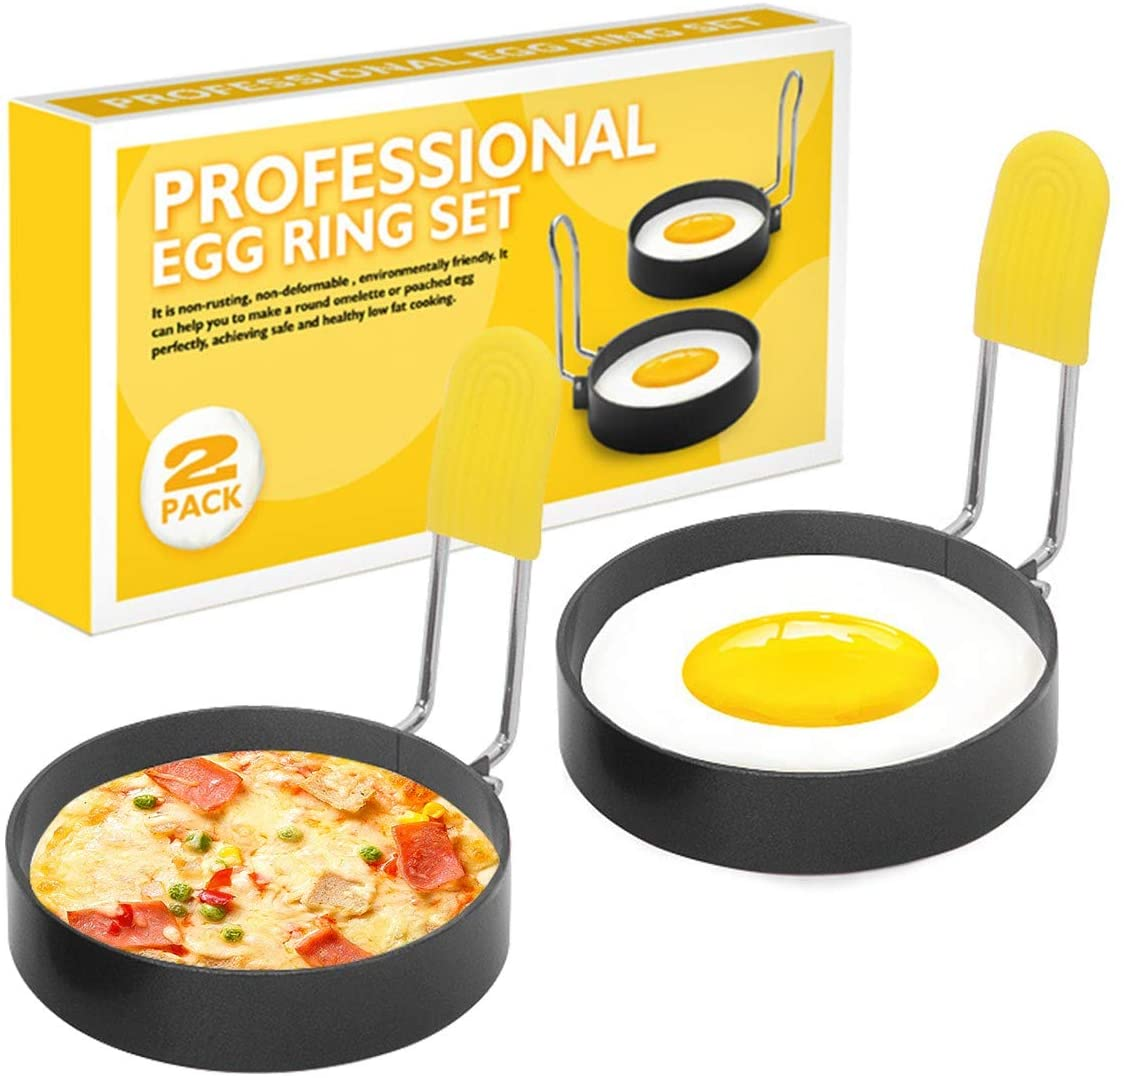 Eggs Rings 2 Max 69% OFF Pack Stainless Steel Set mart Egg Profes Cooking